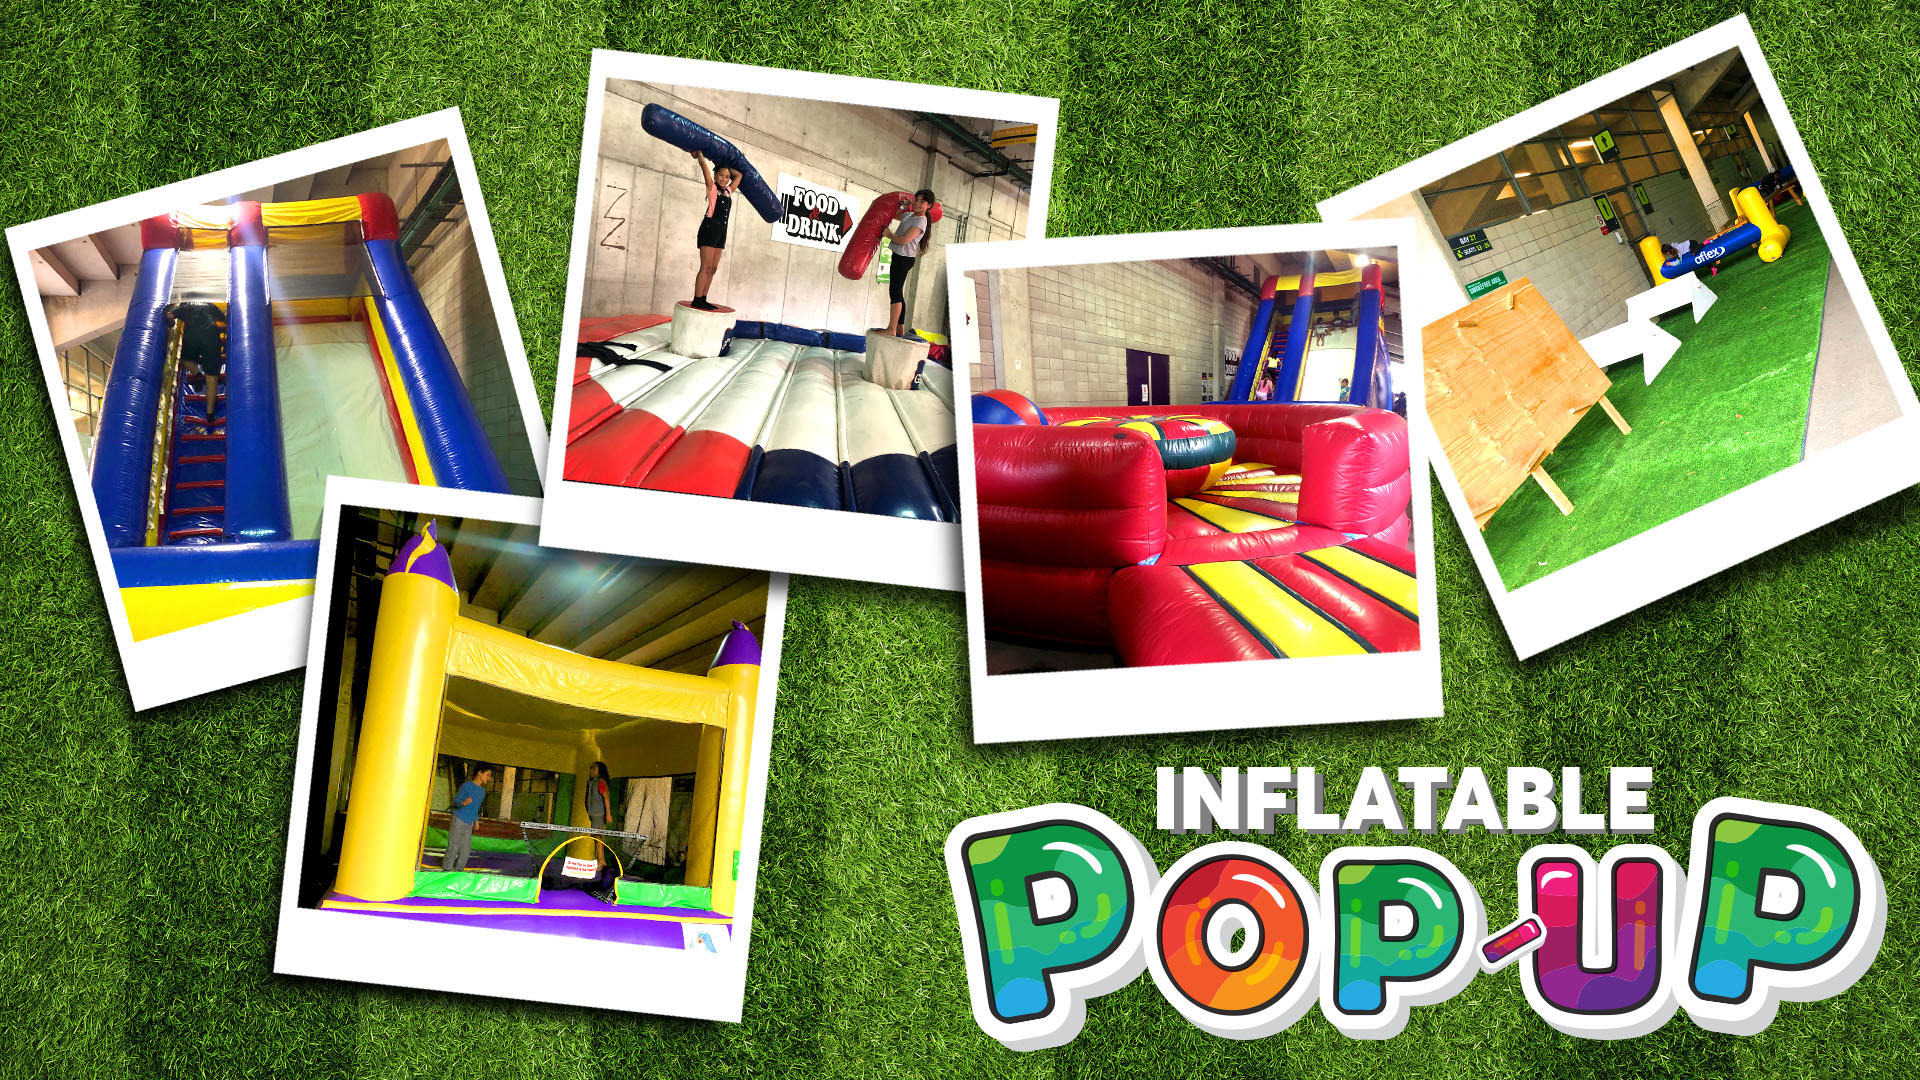 Inflatable Pop-Up